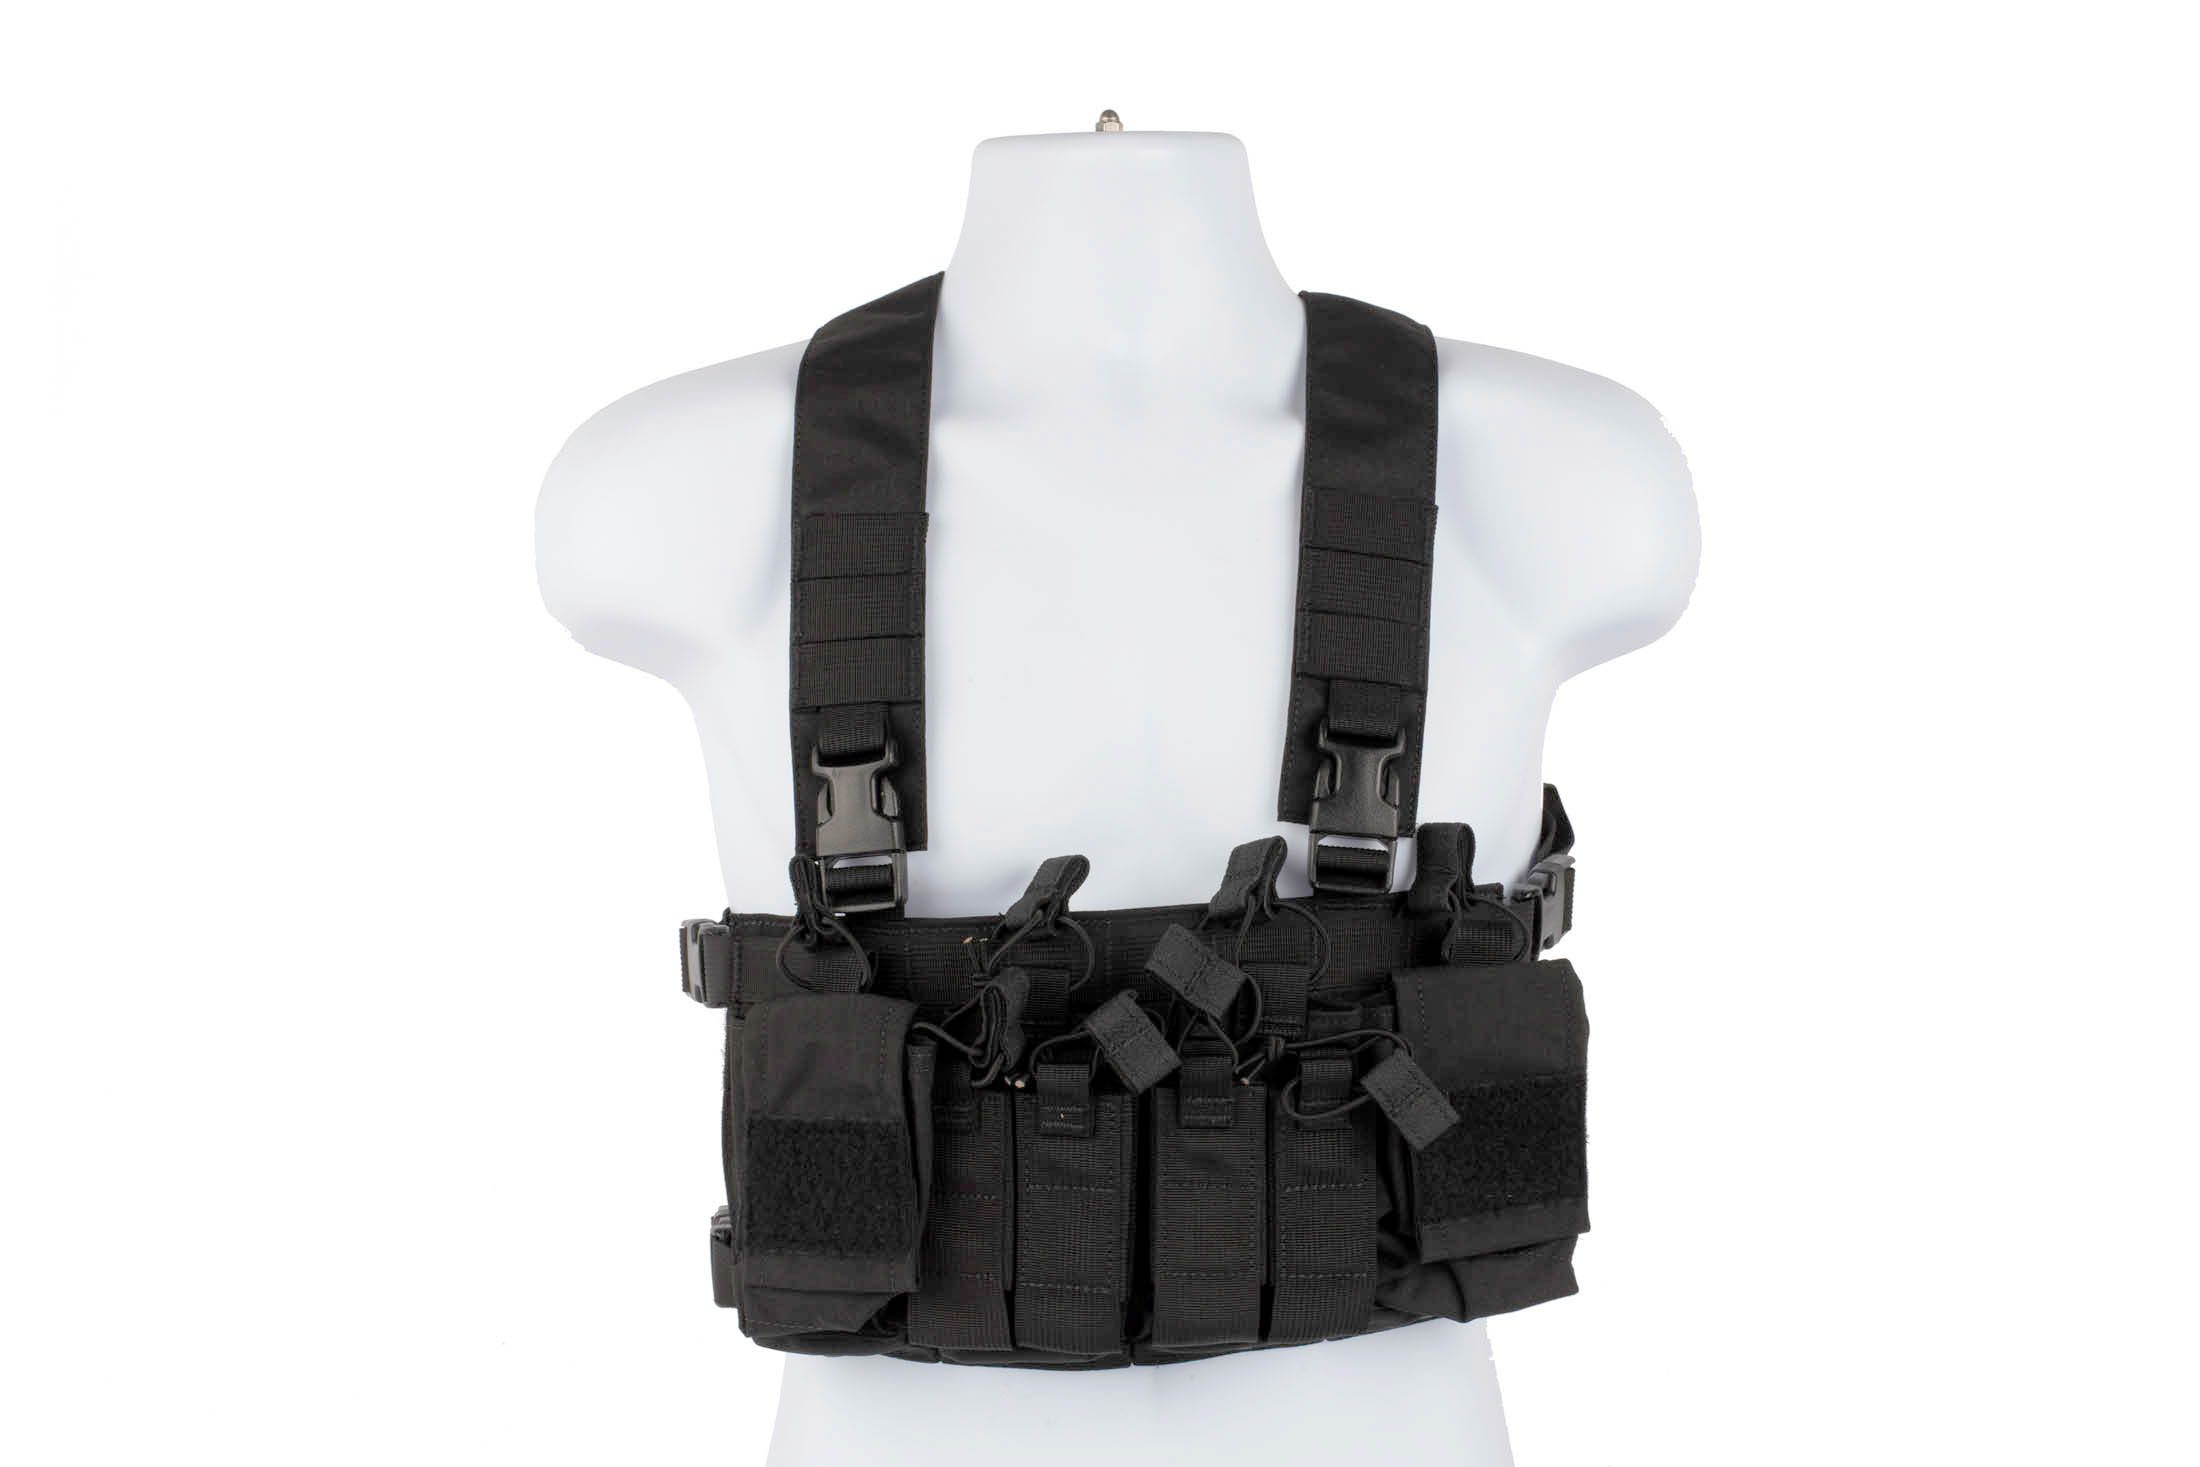 Haley Strategic D3CRX black chest rig features a comfortable X-harness and secure velcro accessory attachment